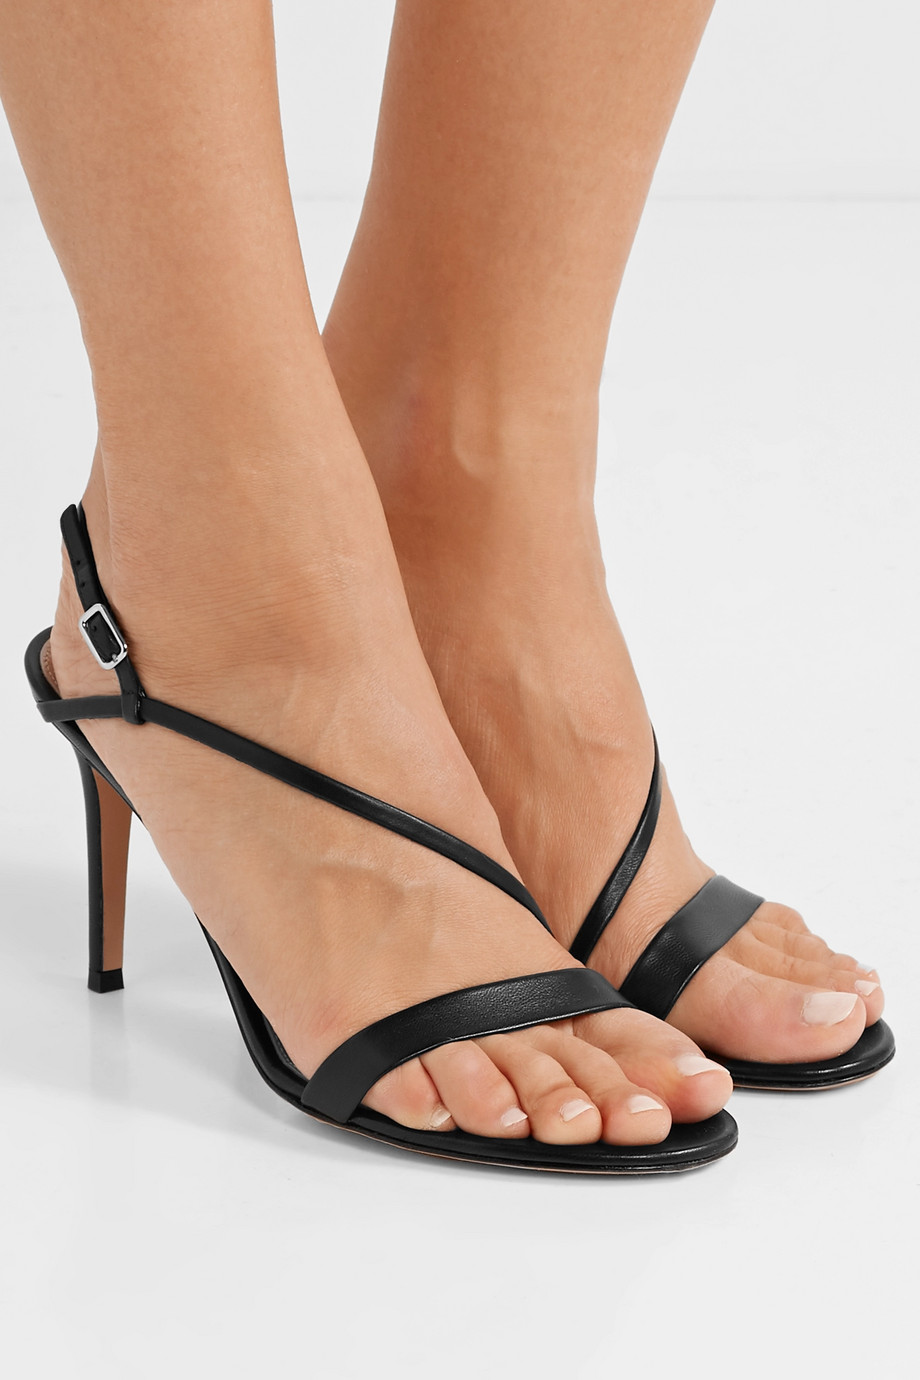 Gianvito Rossi Manhattan 85 leather sandals